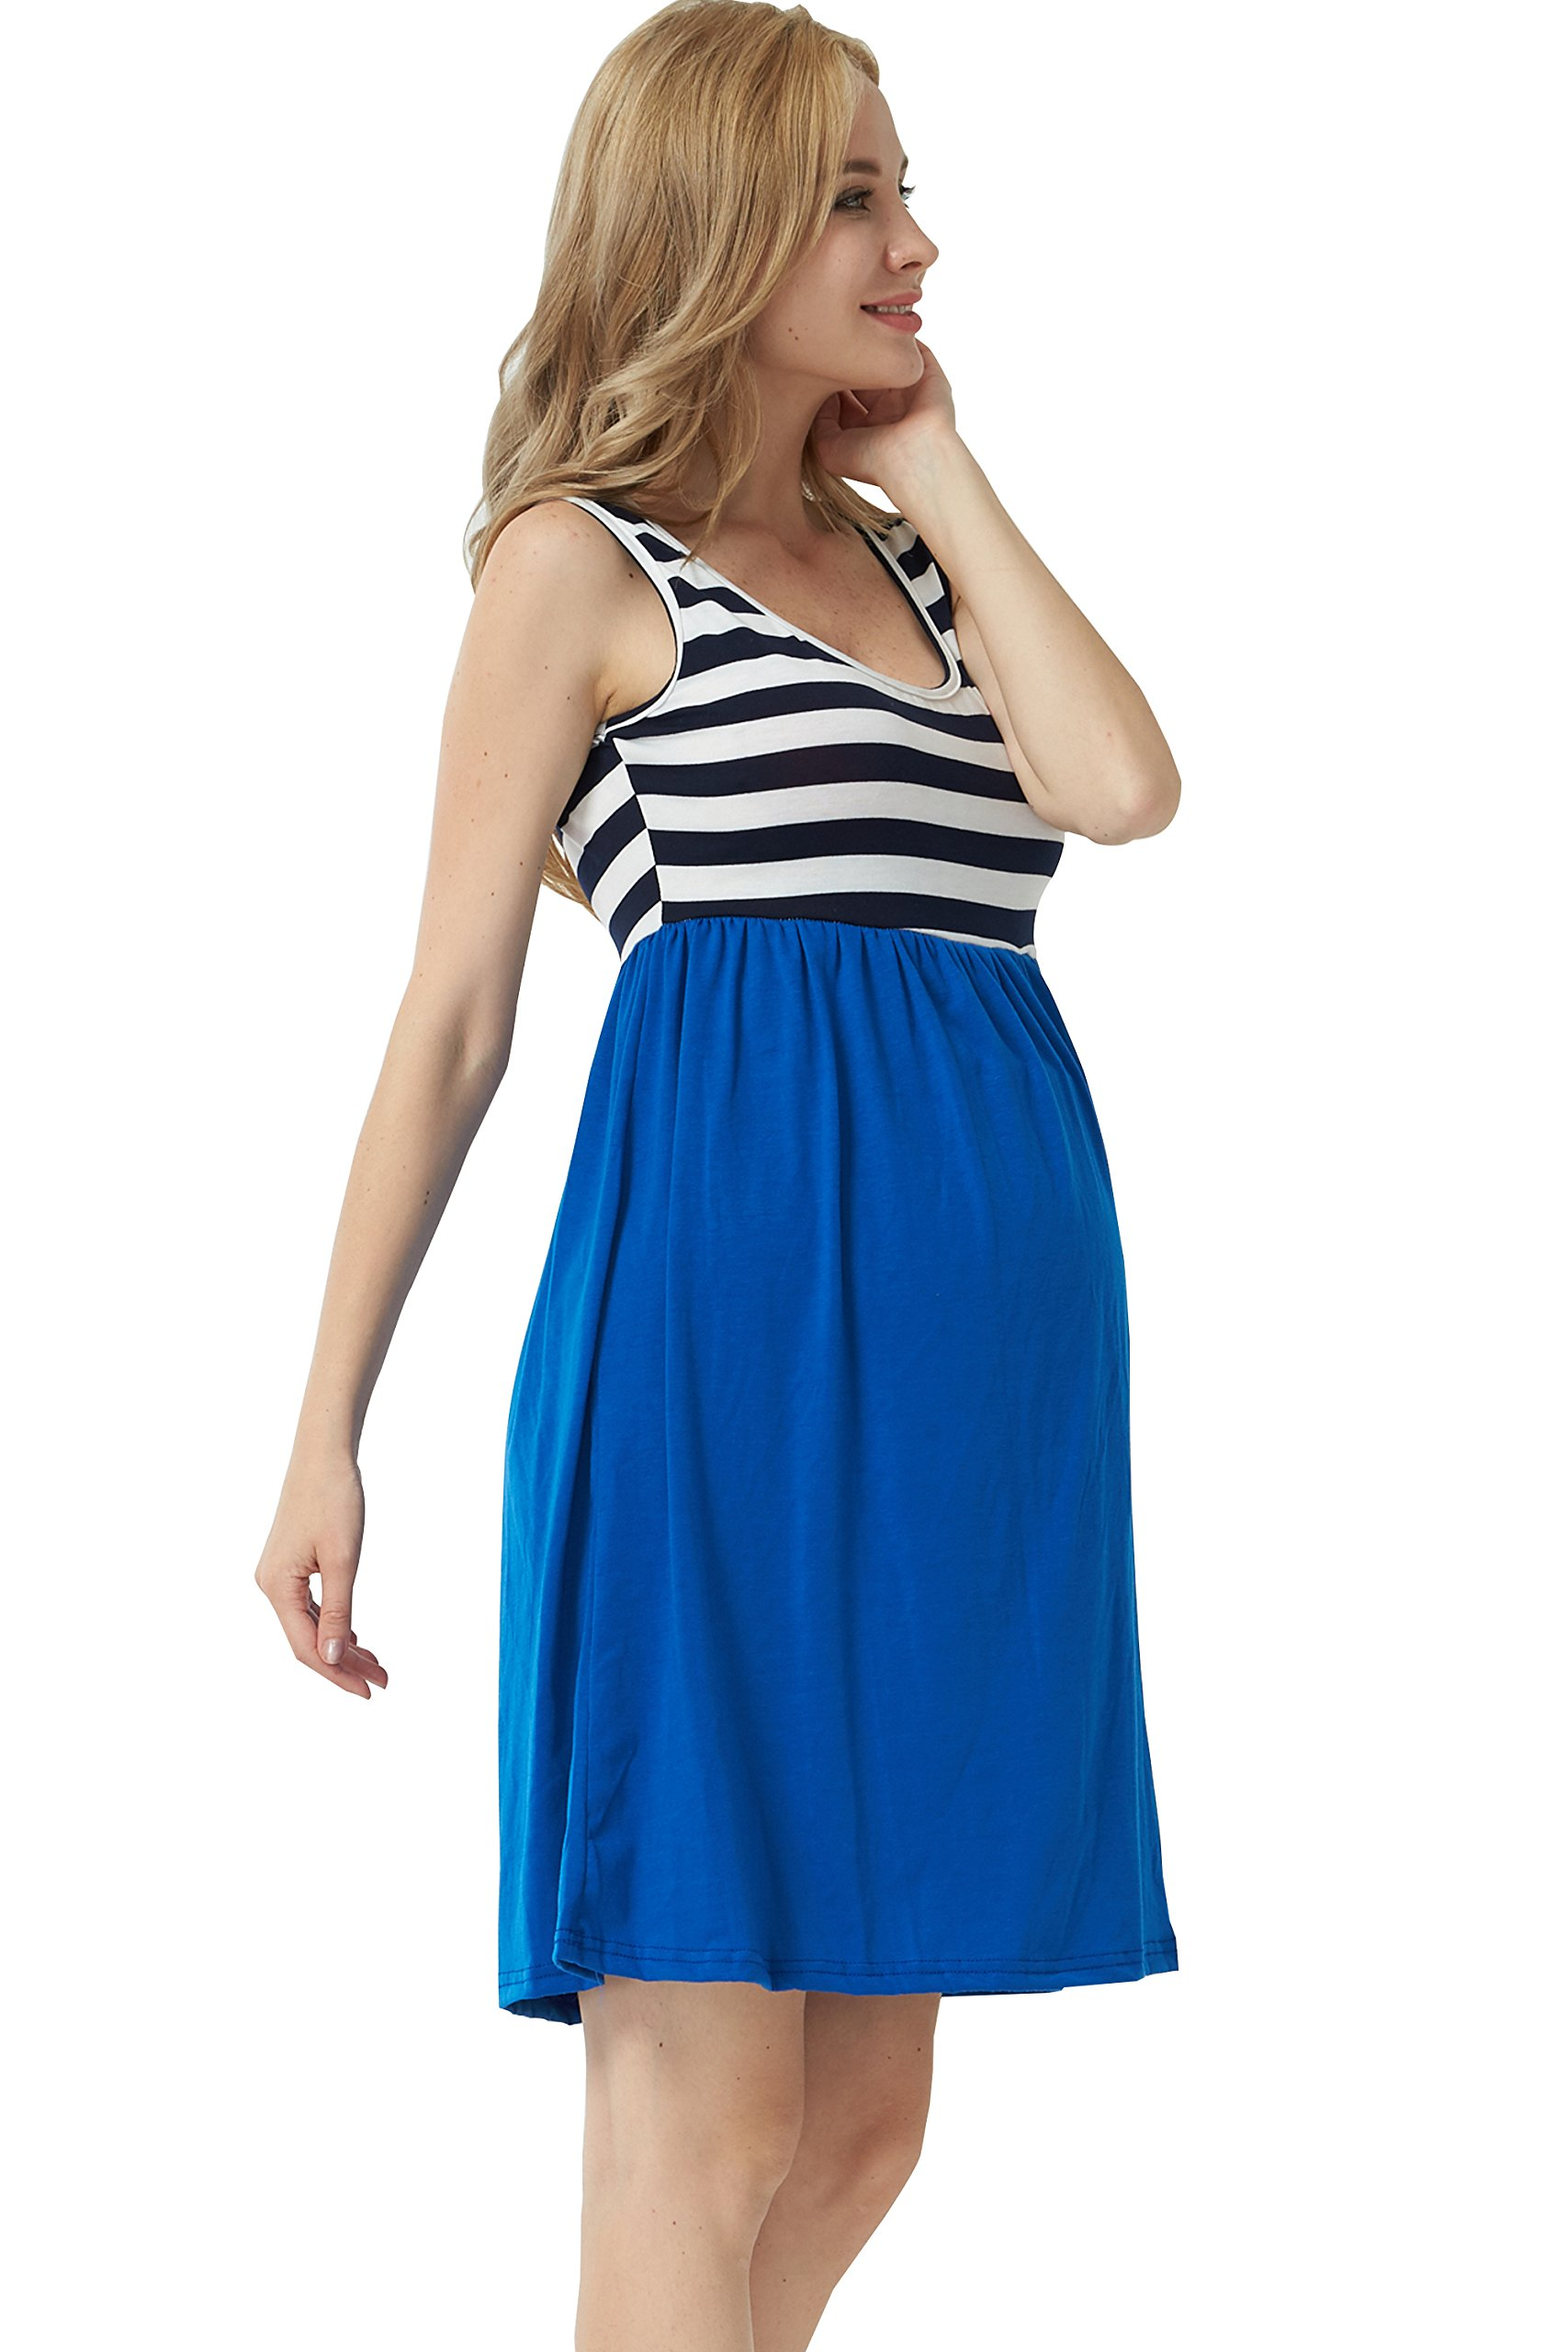 MANNEW Maternity Maxi Dress Pregnancy Tank Tops Knee Length Stitching Color Block Stripe Skirt (Blue, X-Large) by MANNEW (Image #4)